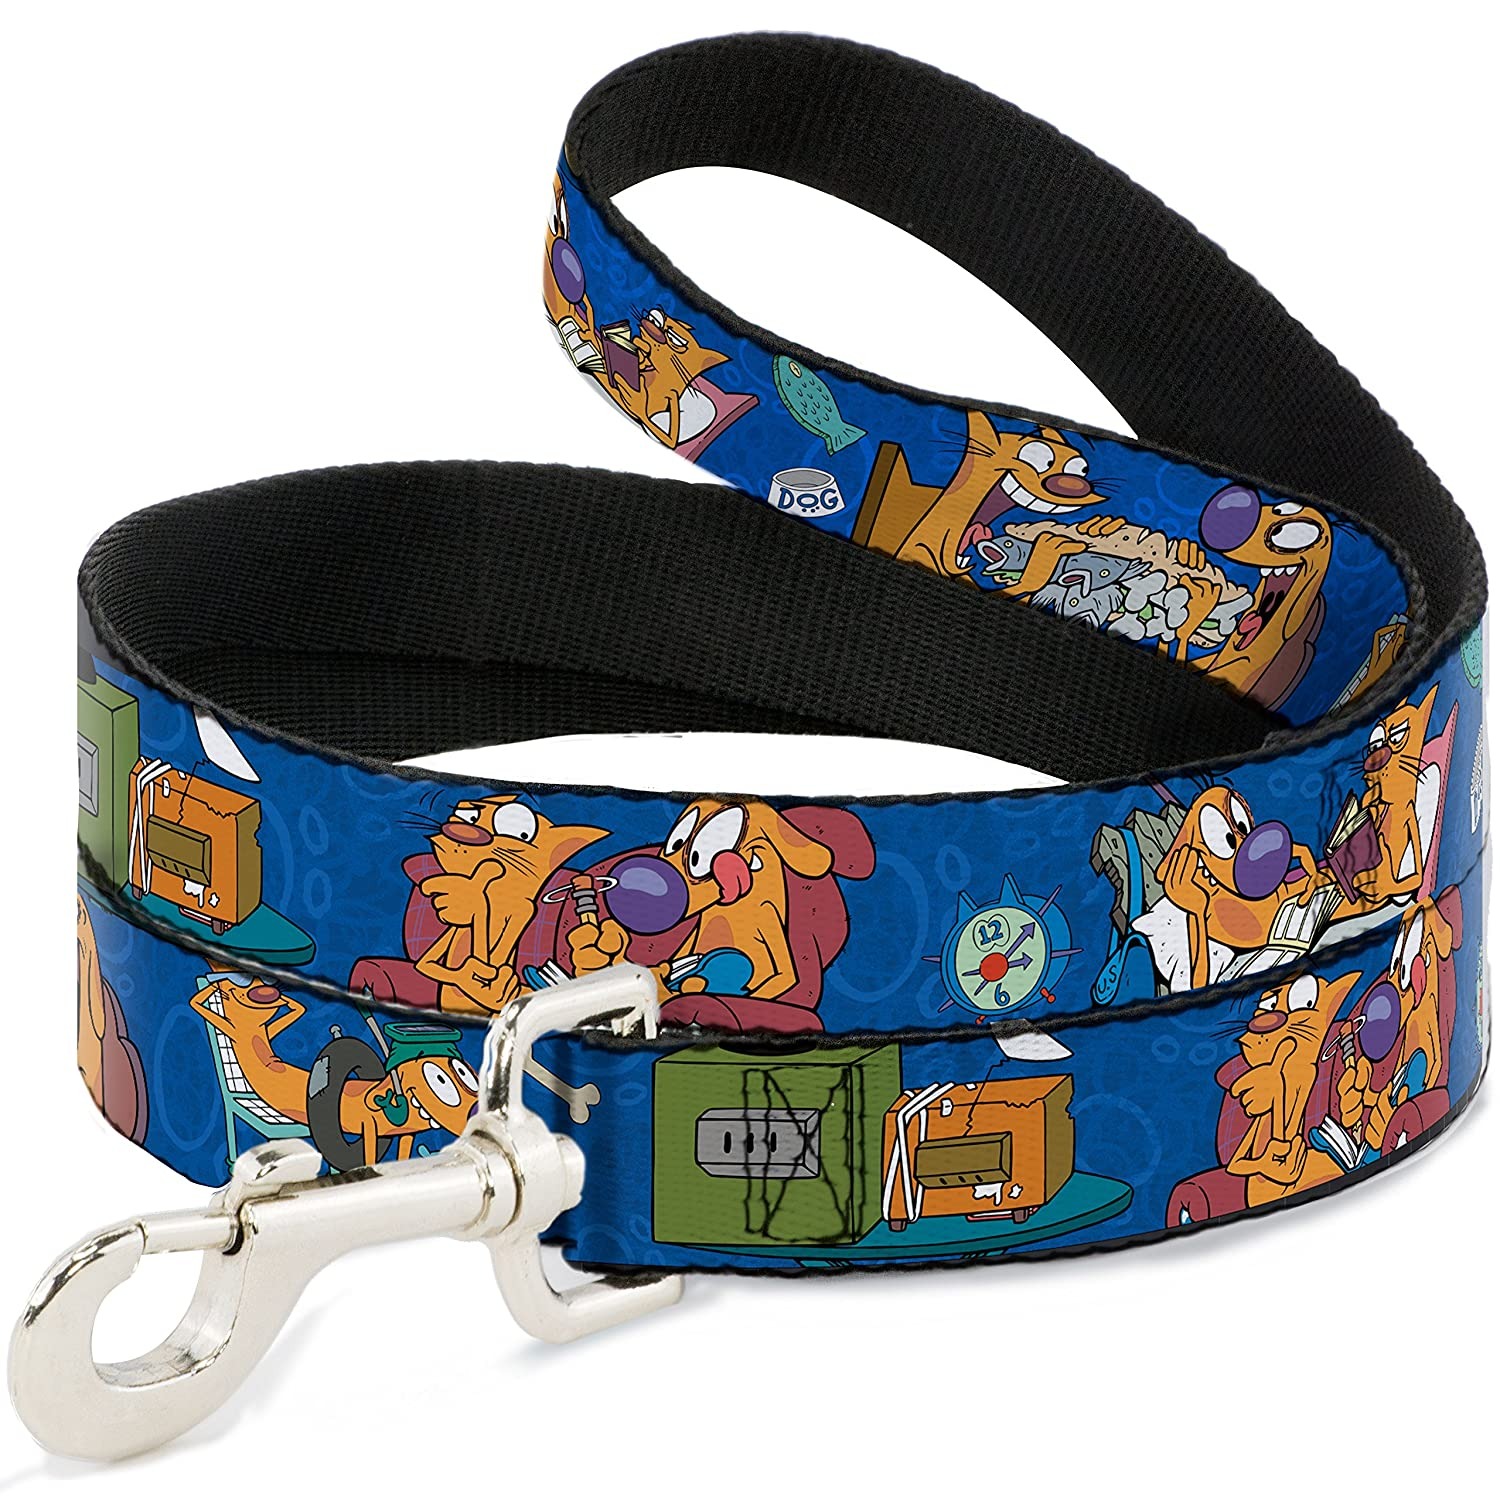 Buckle-Down DL-6FT-WCT003 Dog Leash, Cat Dog Hanging Out Poses bluee, 6'